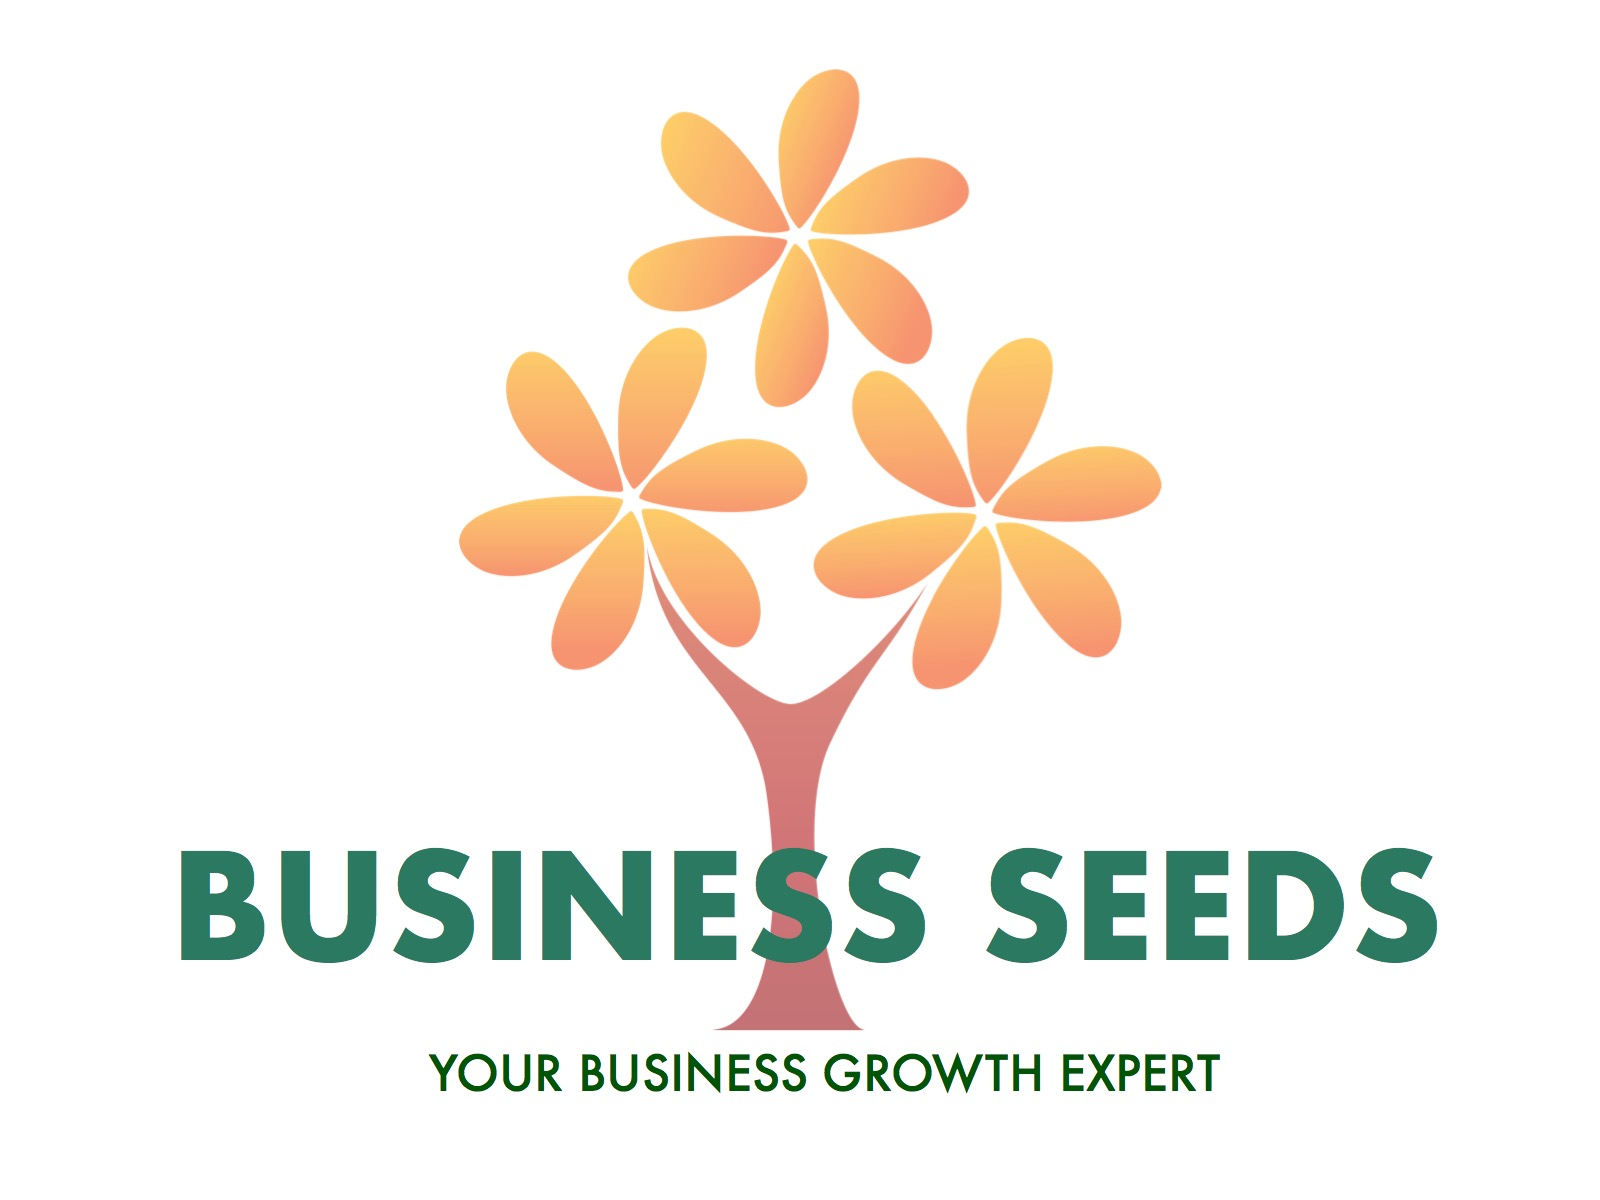 Business Seeds